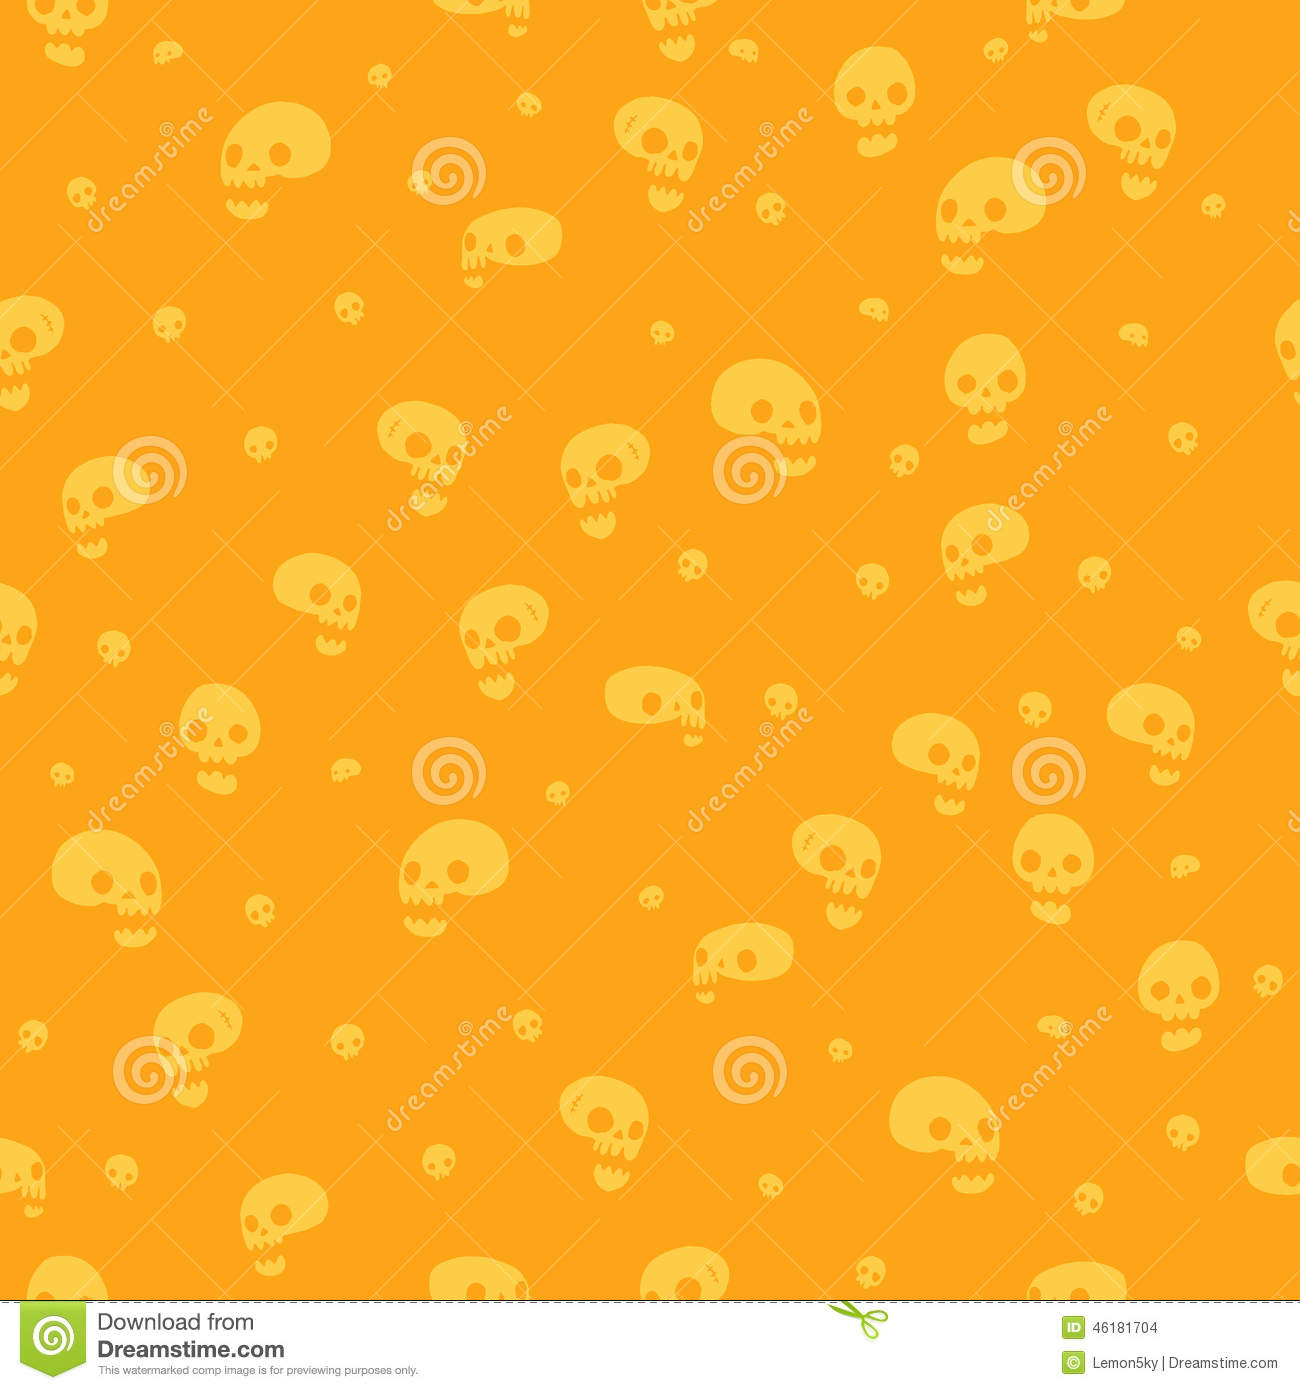 Great Wallpaper Halloween Gold - halloween-party-skull-background-seamless-pattern-vector-web-page-backgrounds-postcards-greeting-cards-invitations-fills-46181704  HD_349025.jpg